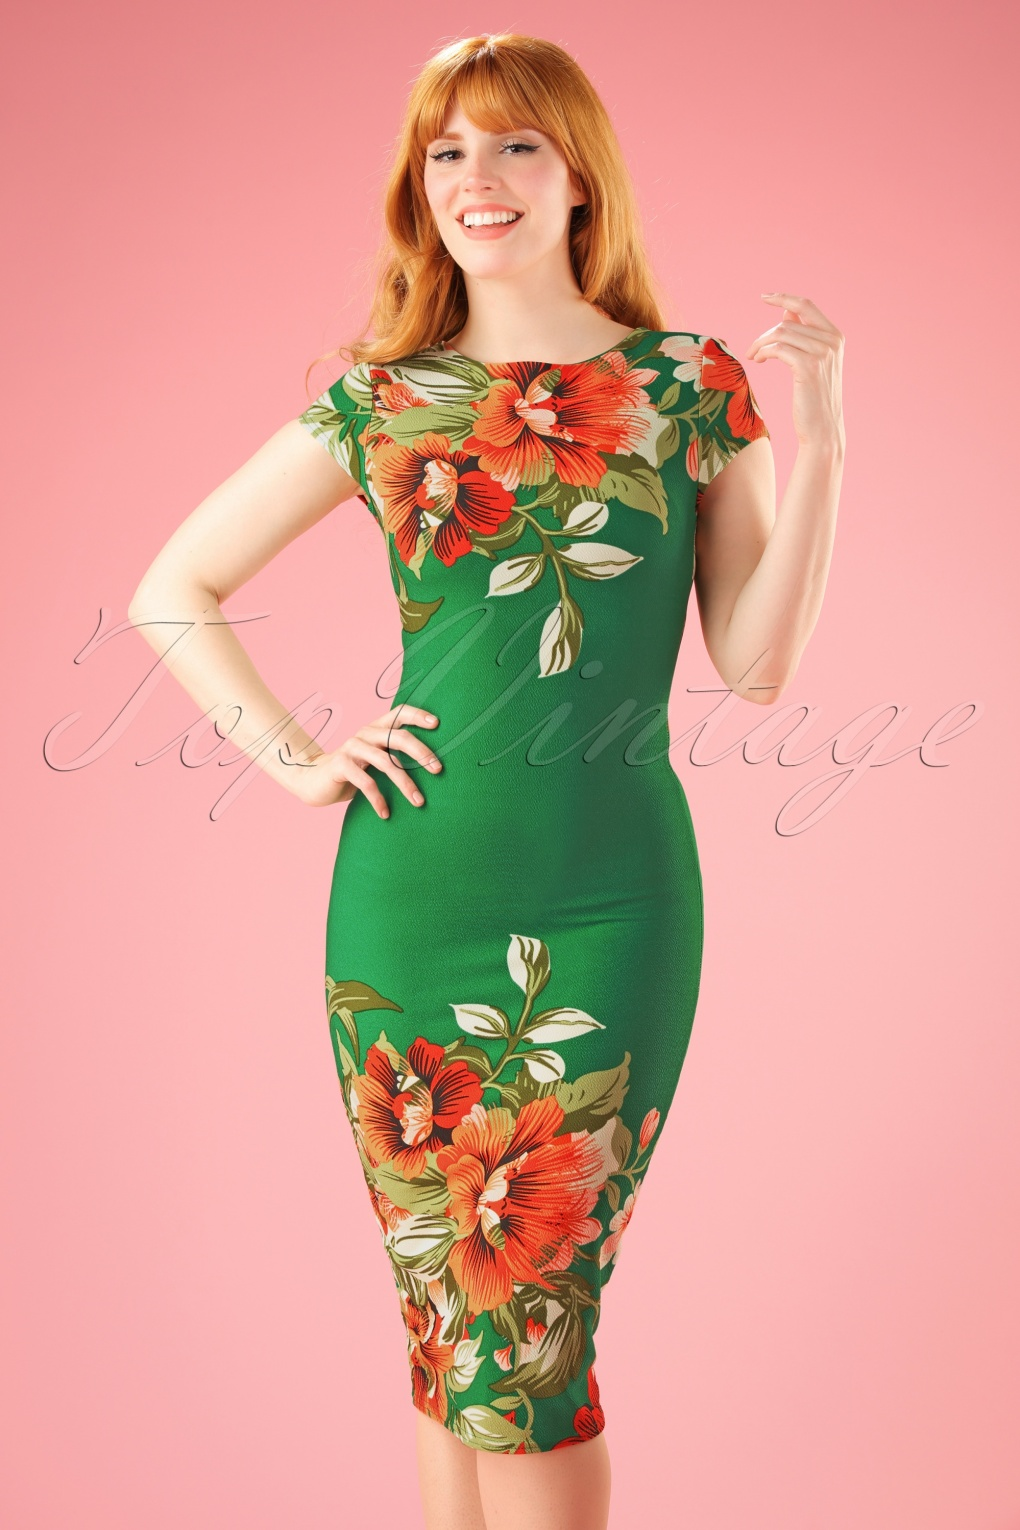 1960s Style Dresses- Retro Inspired Fashion 60s Aloha Tropical Garden Short Sleeves Pencil Dress in Emerald Green £25.26 AT vintagedancer.com